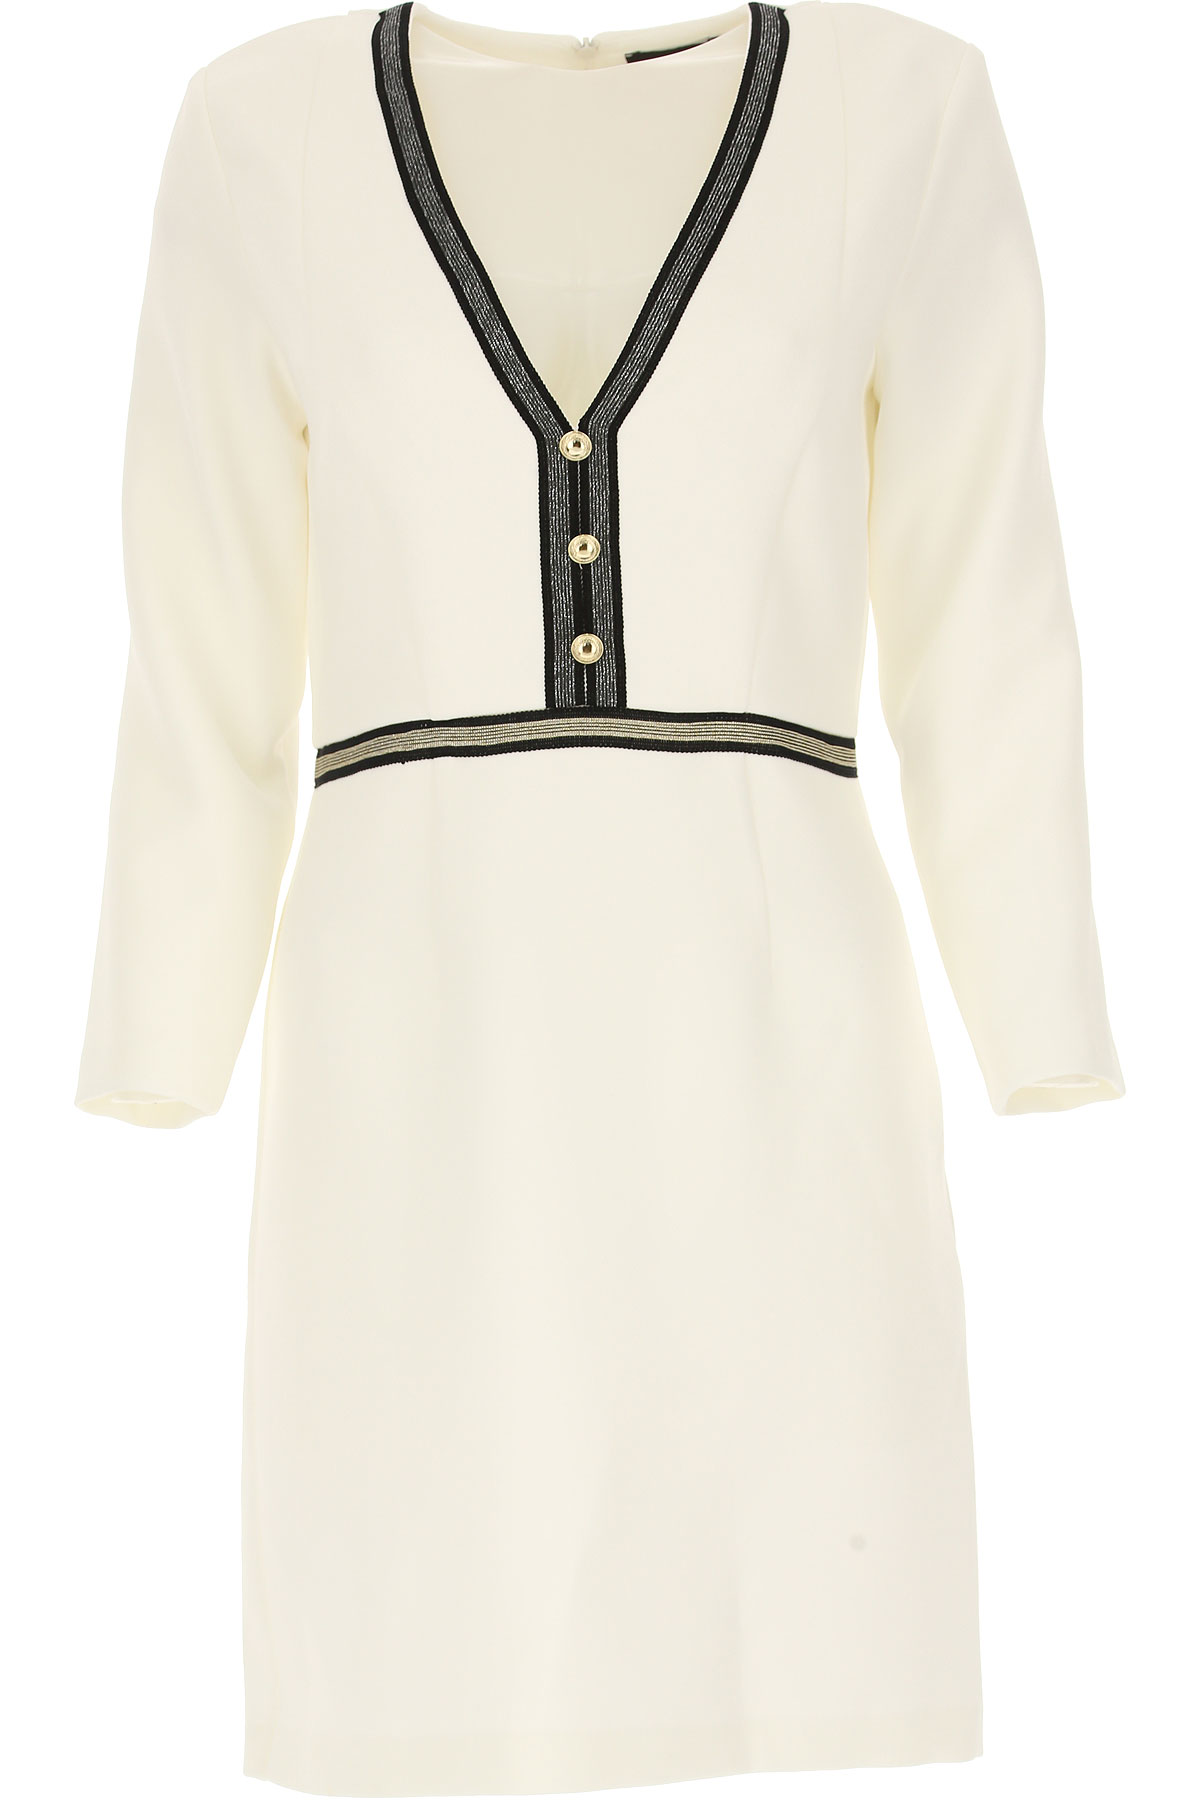 Image of Atos Lombardini Dress for Women, Evening Cocktail Party, White, polyester, 2017, 10 6 8